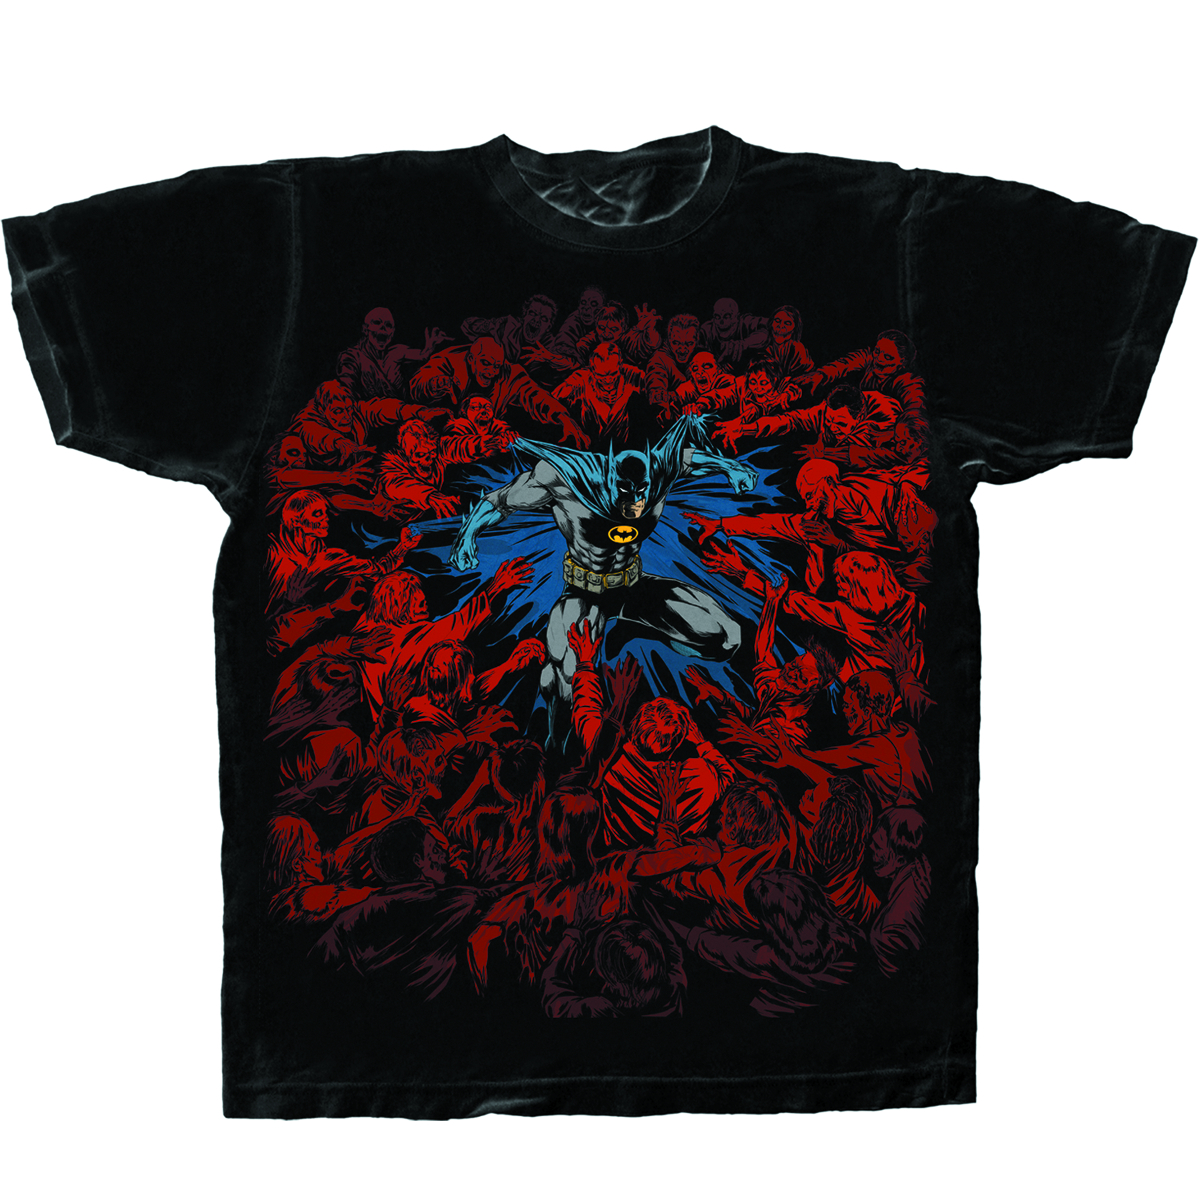 BATMAN DEFENSE BLK T/S XL